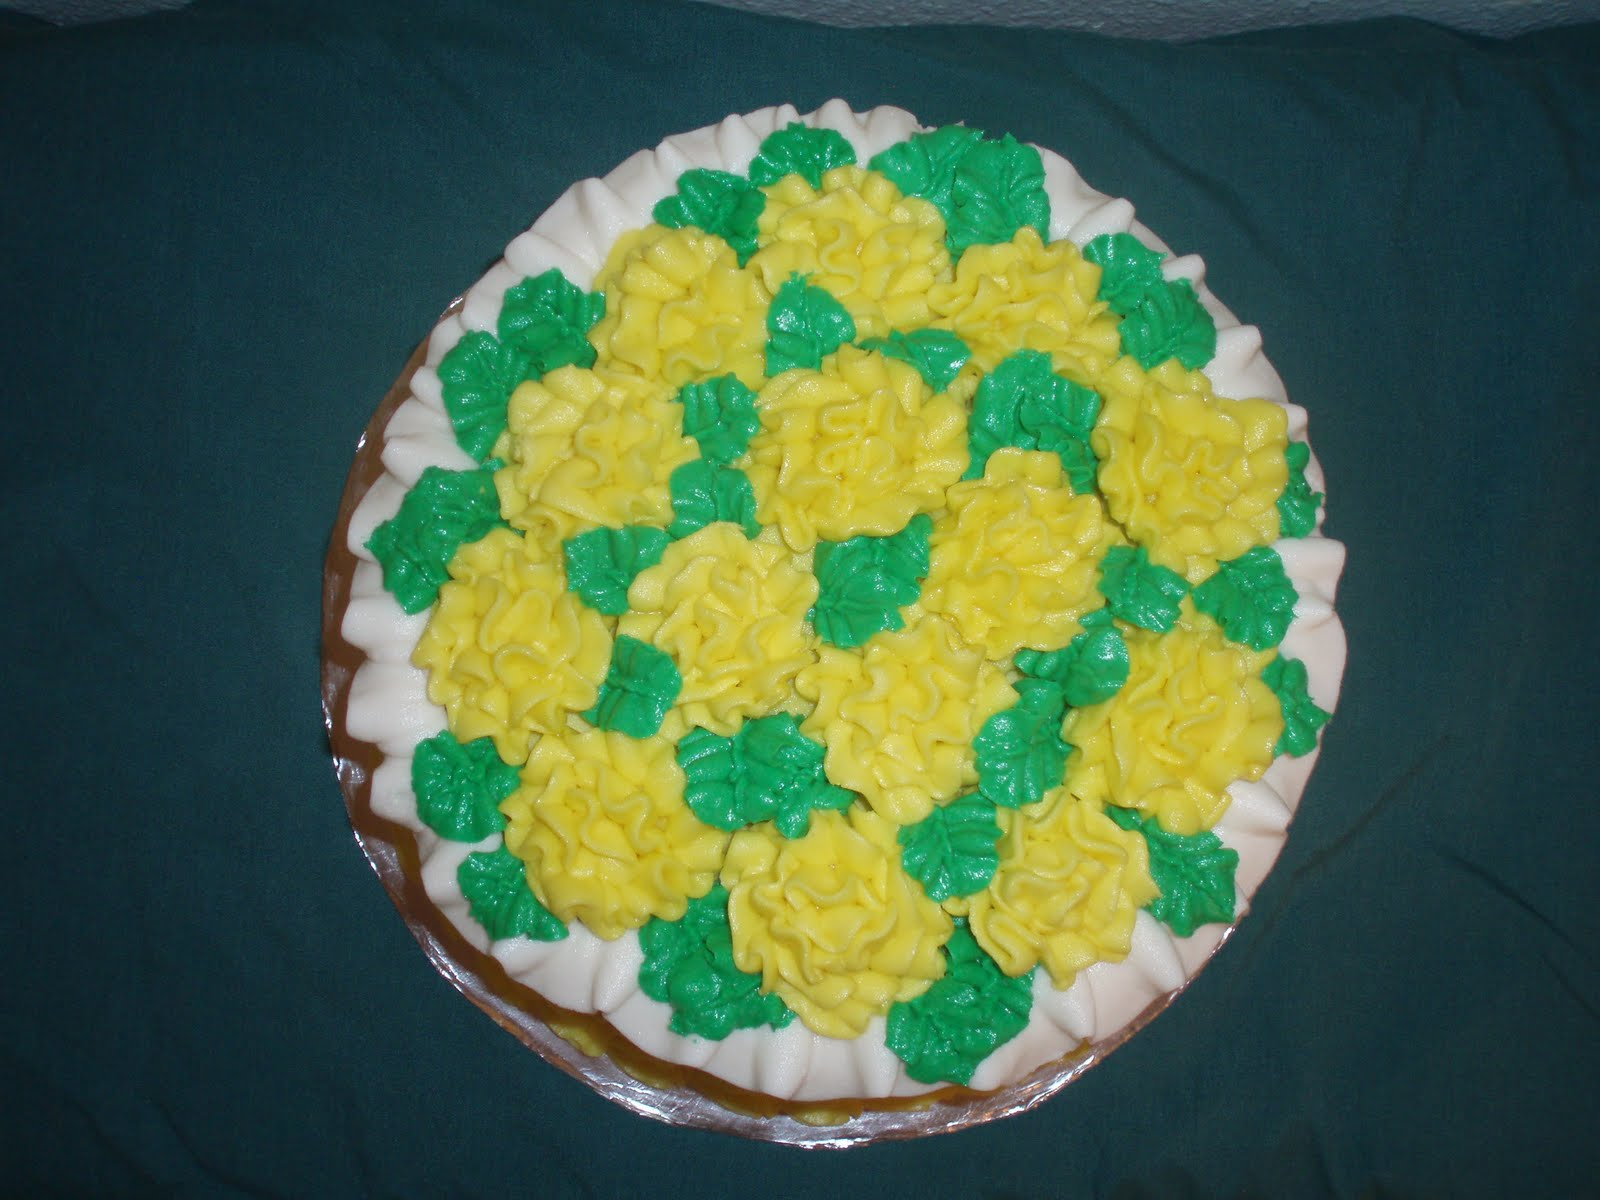 What Training Is Needed For Cake Decorating